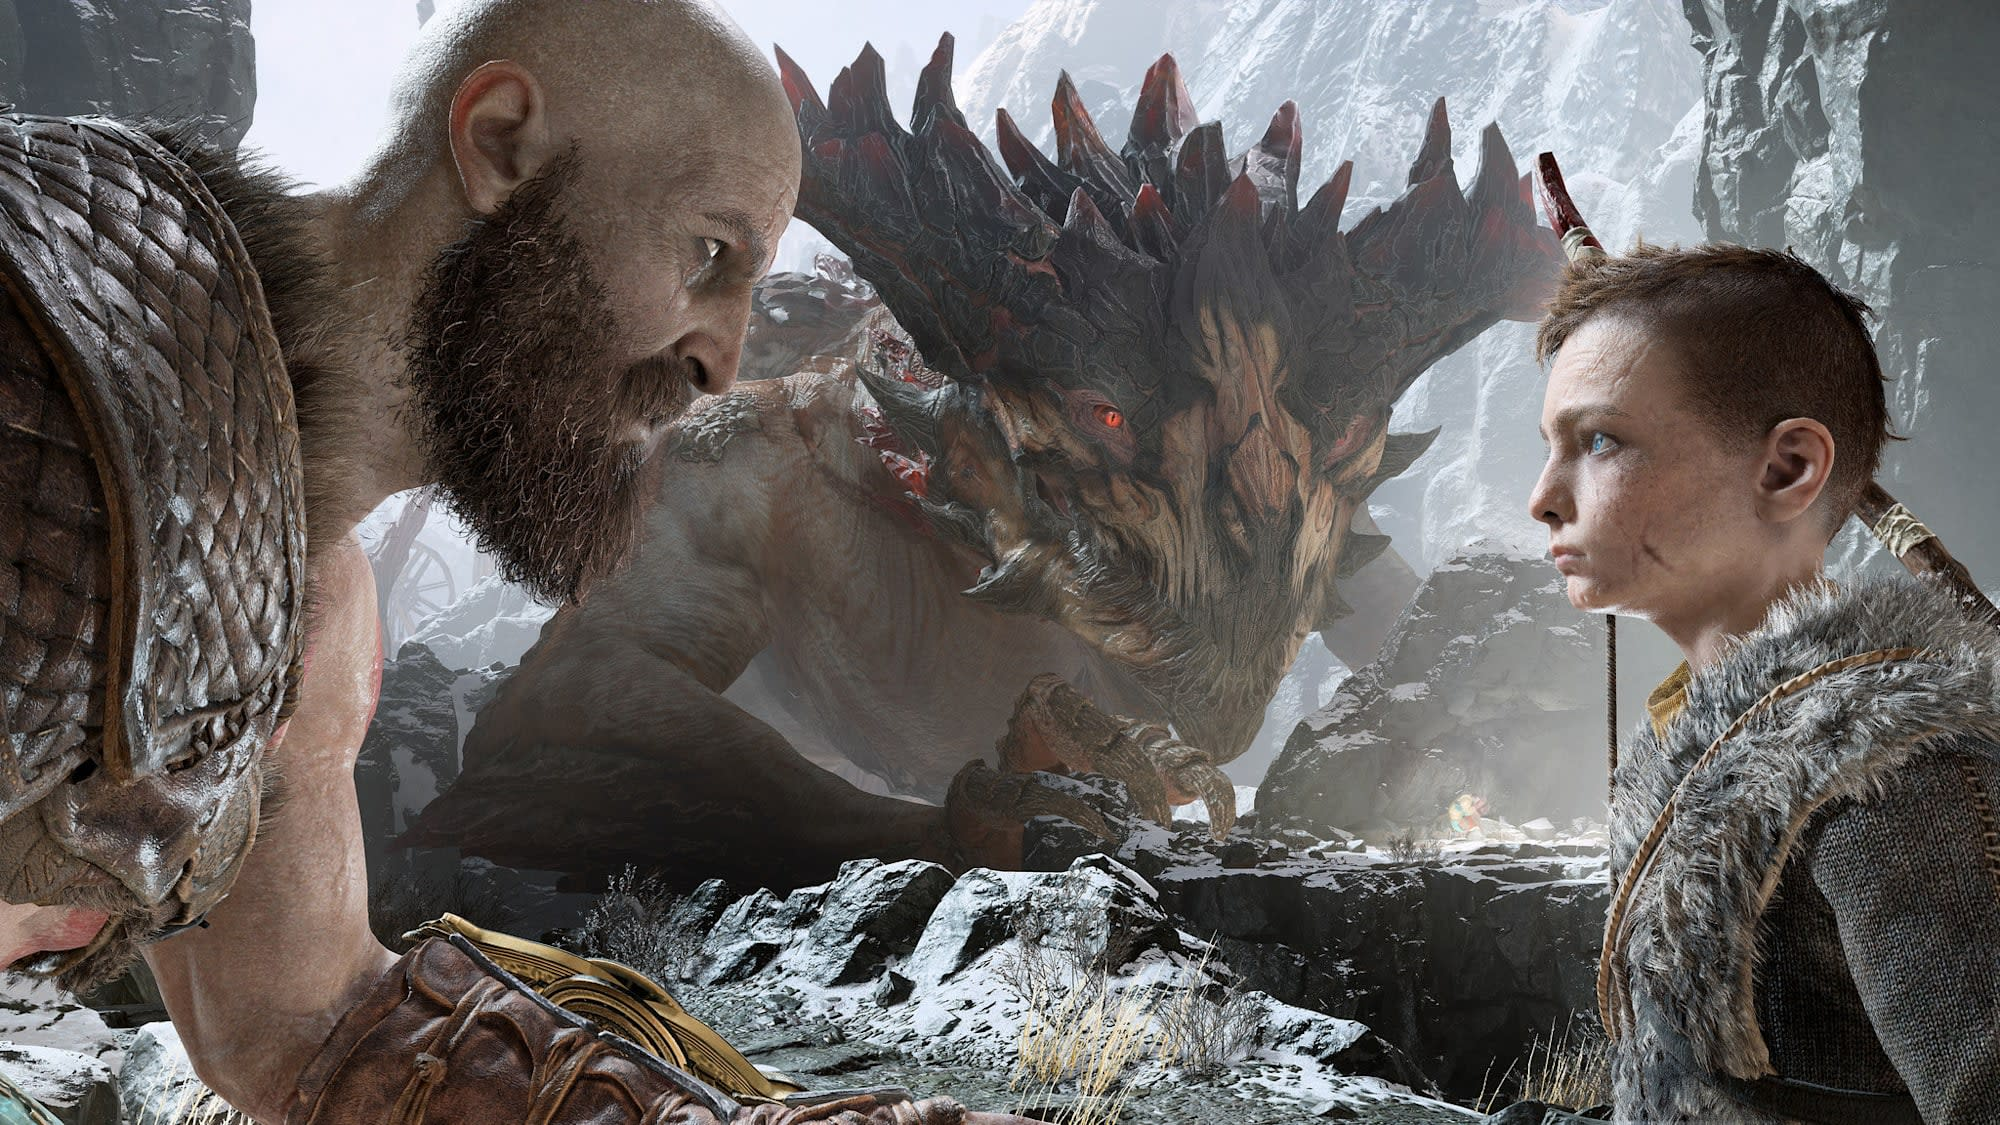 Sony adds 'God of War' and six other games to its PlayStation Hits lineup